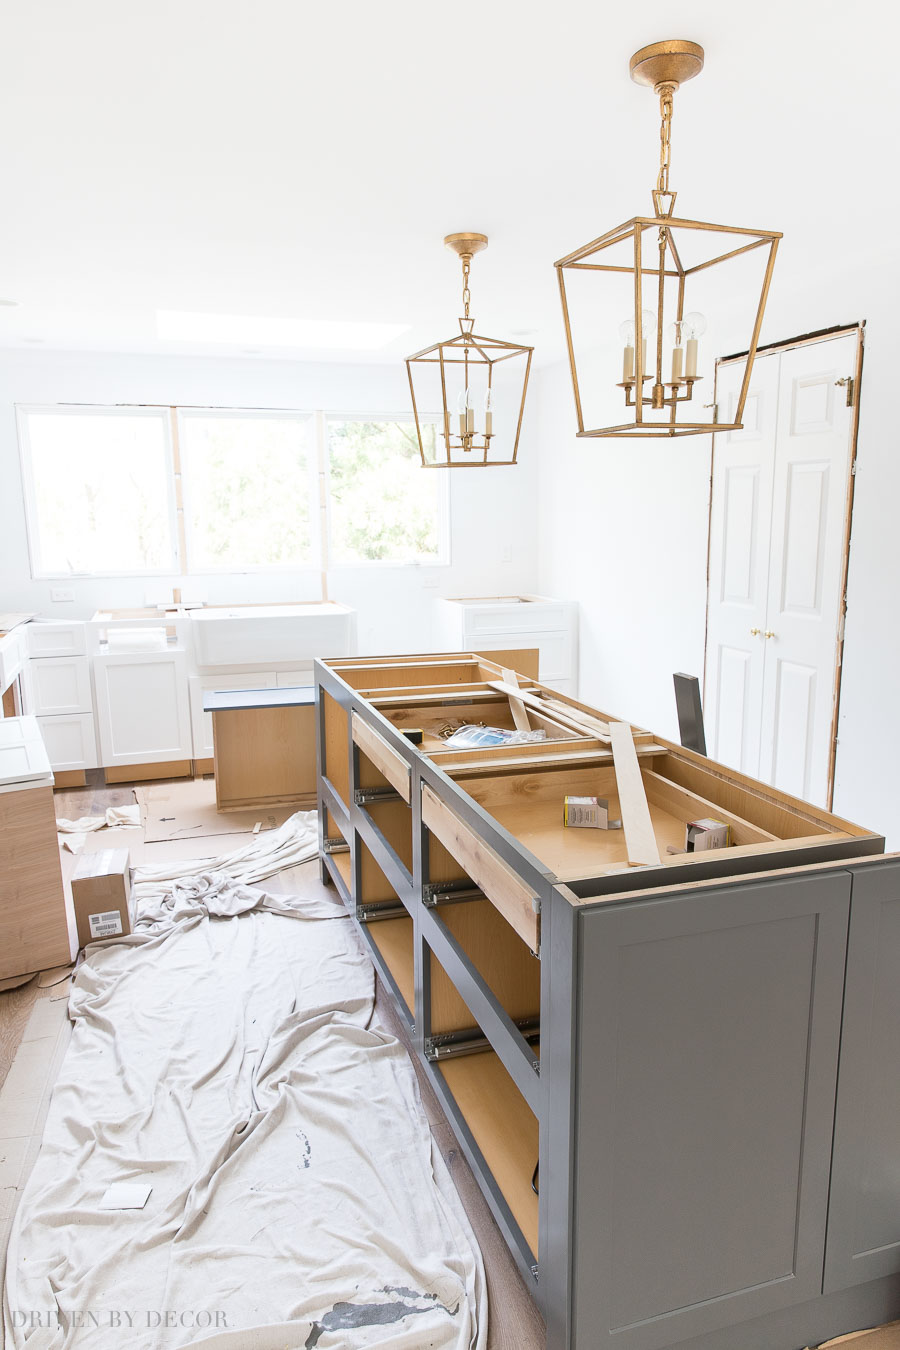 So fun seeing the progress on this kitchen remodel! Love the lighting and gray and white cabinets!